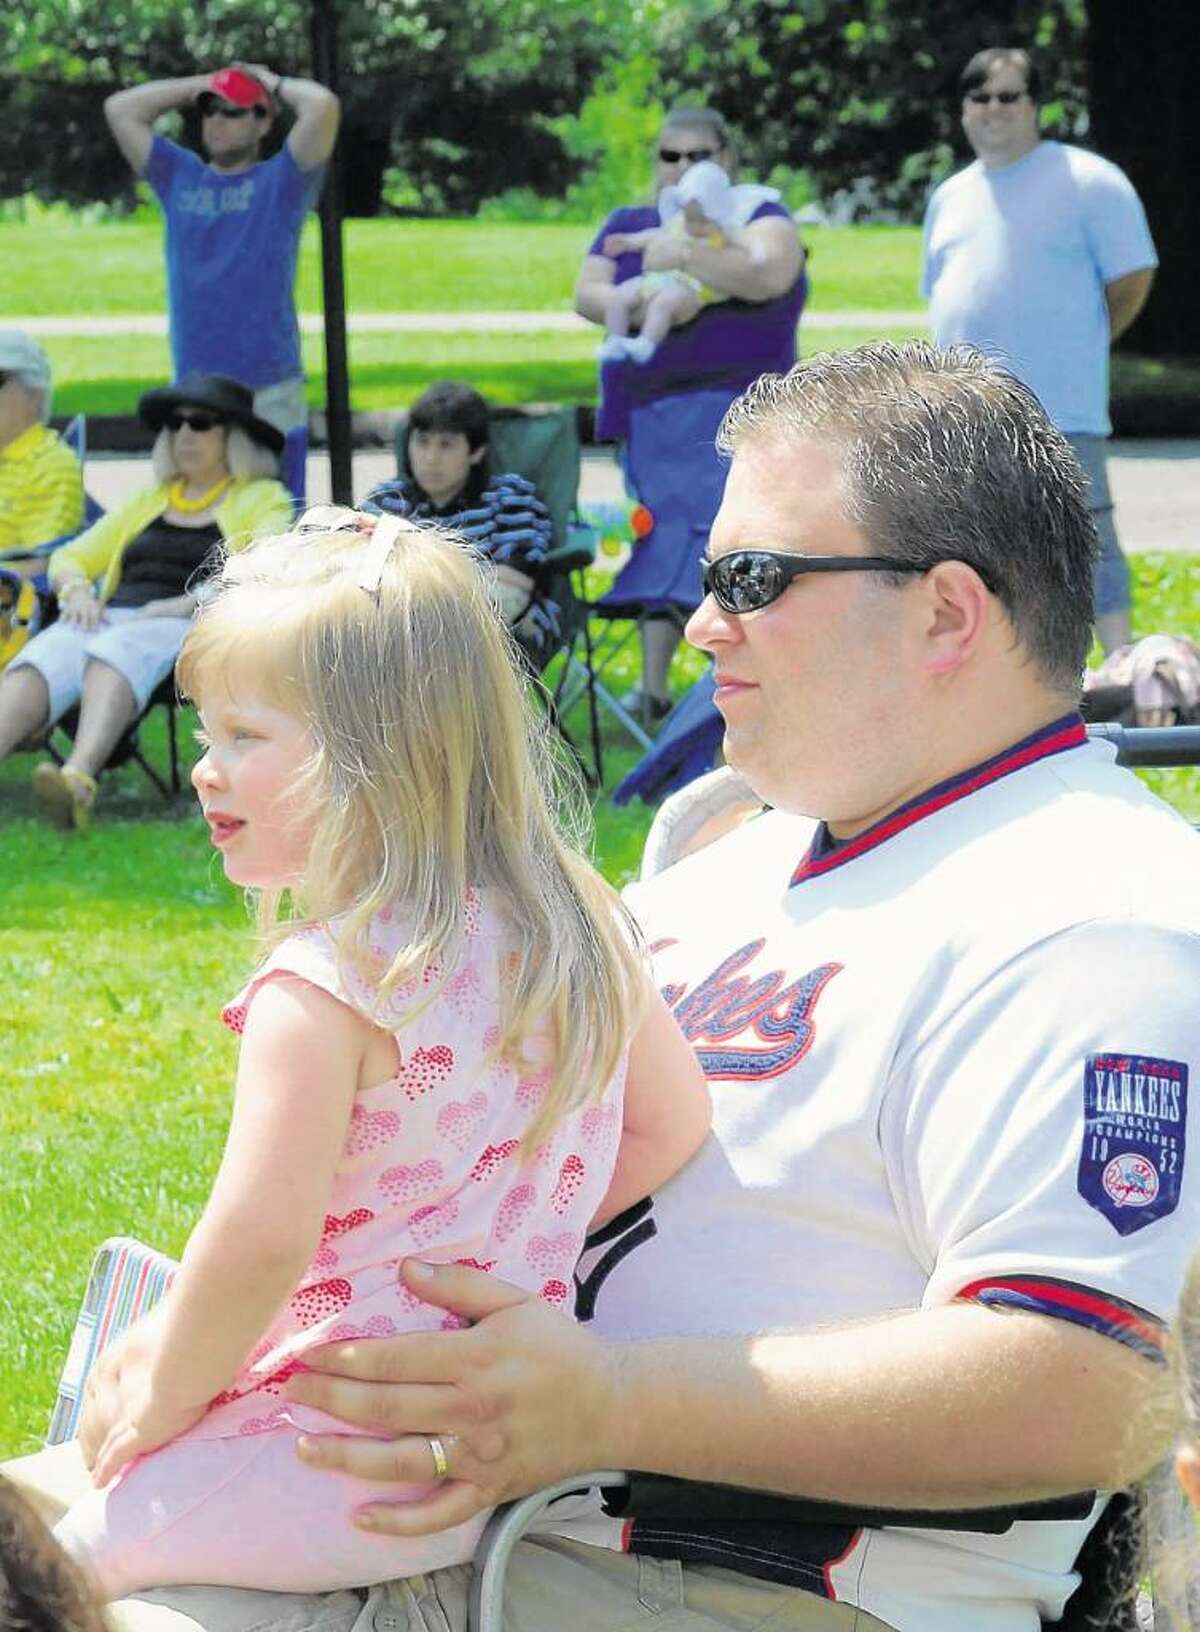 Aaliyah Frank, 3, and her dad, Brian Frank, of Danbury, watch Fairy Tale Theater's performance of